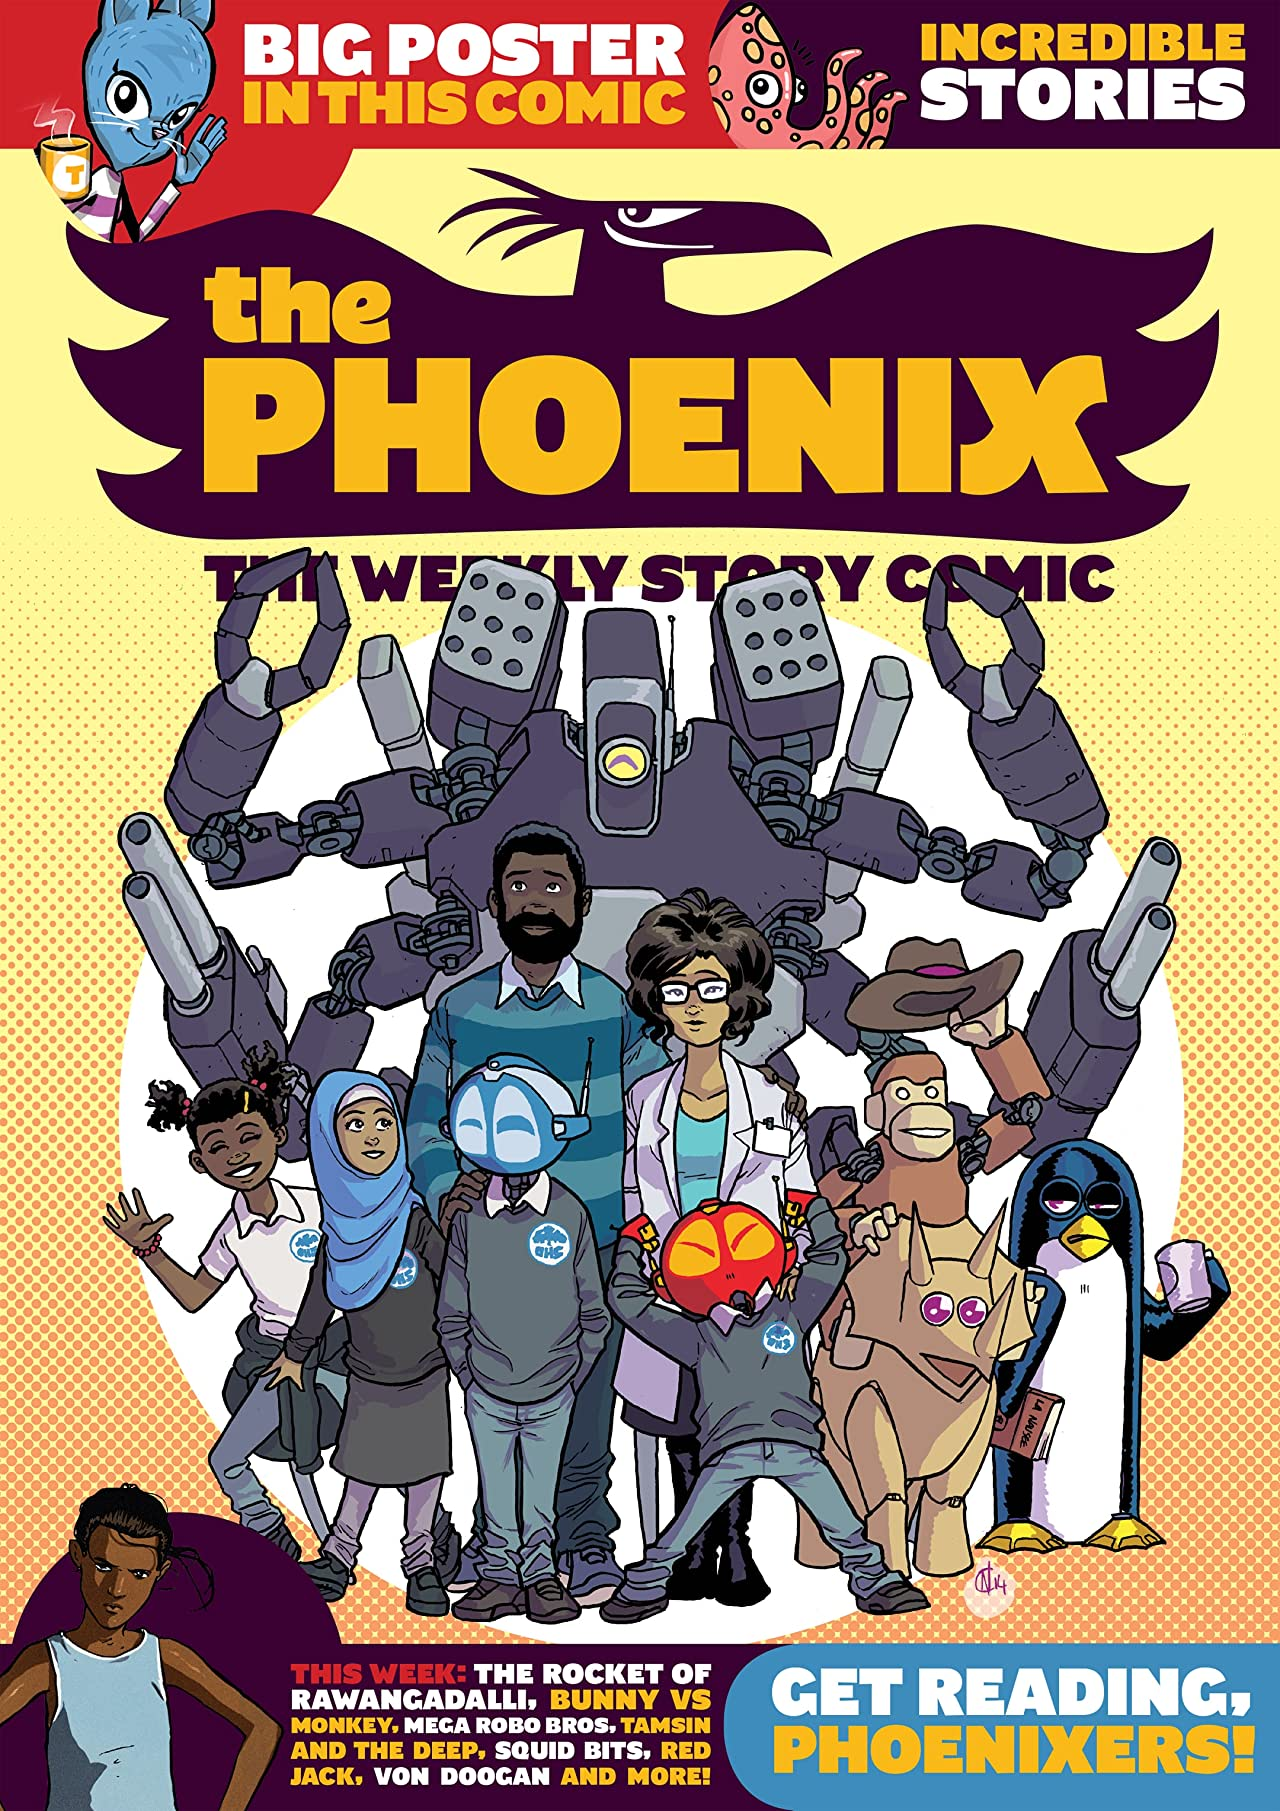 The Phoenix #159: The Weekly Story Comic